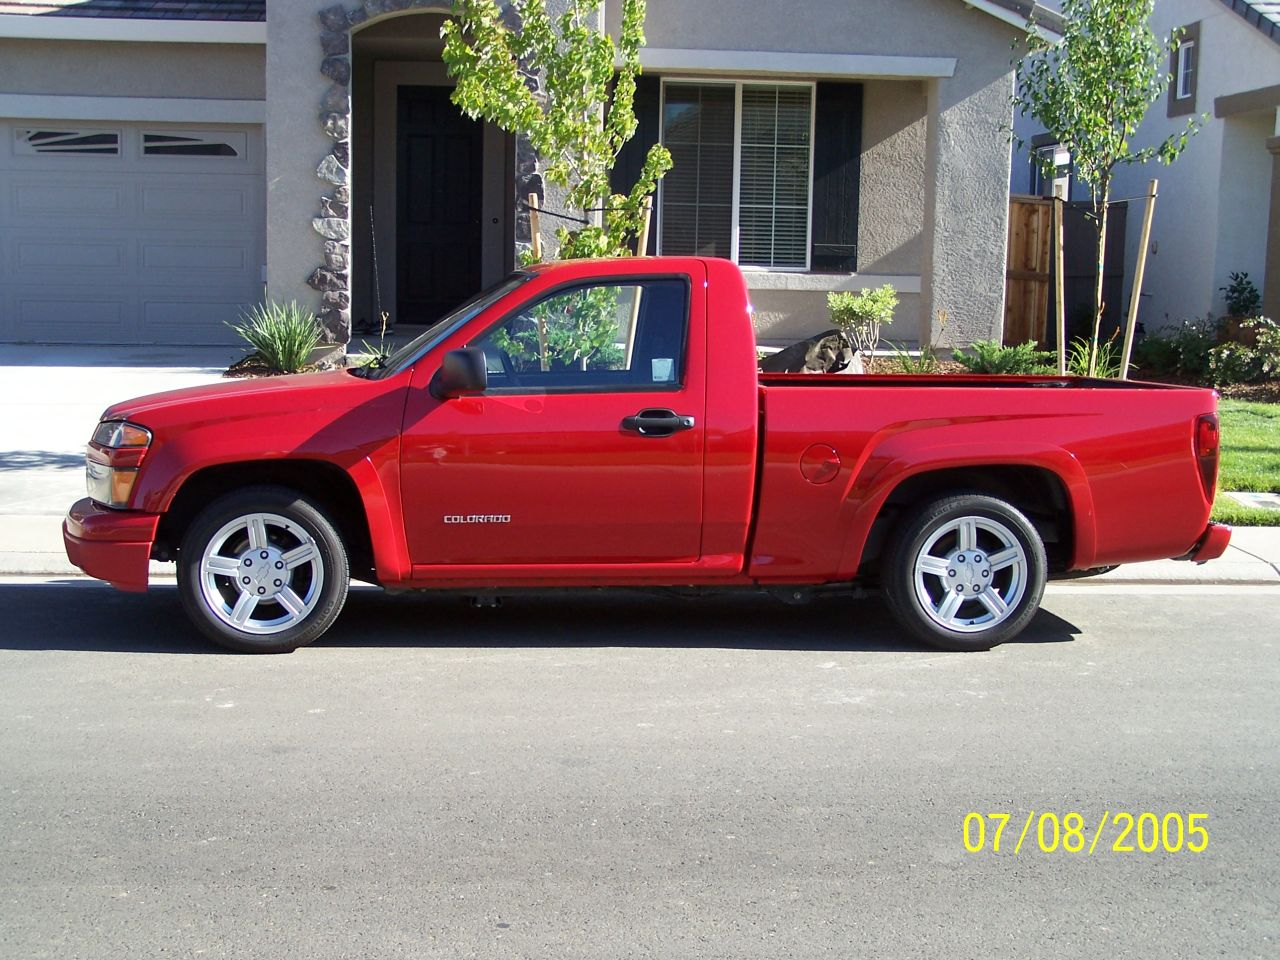 2005 Chevrolet Colorado Regular Cab